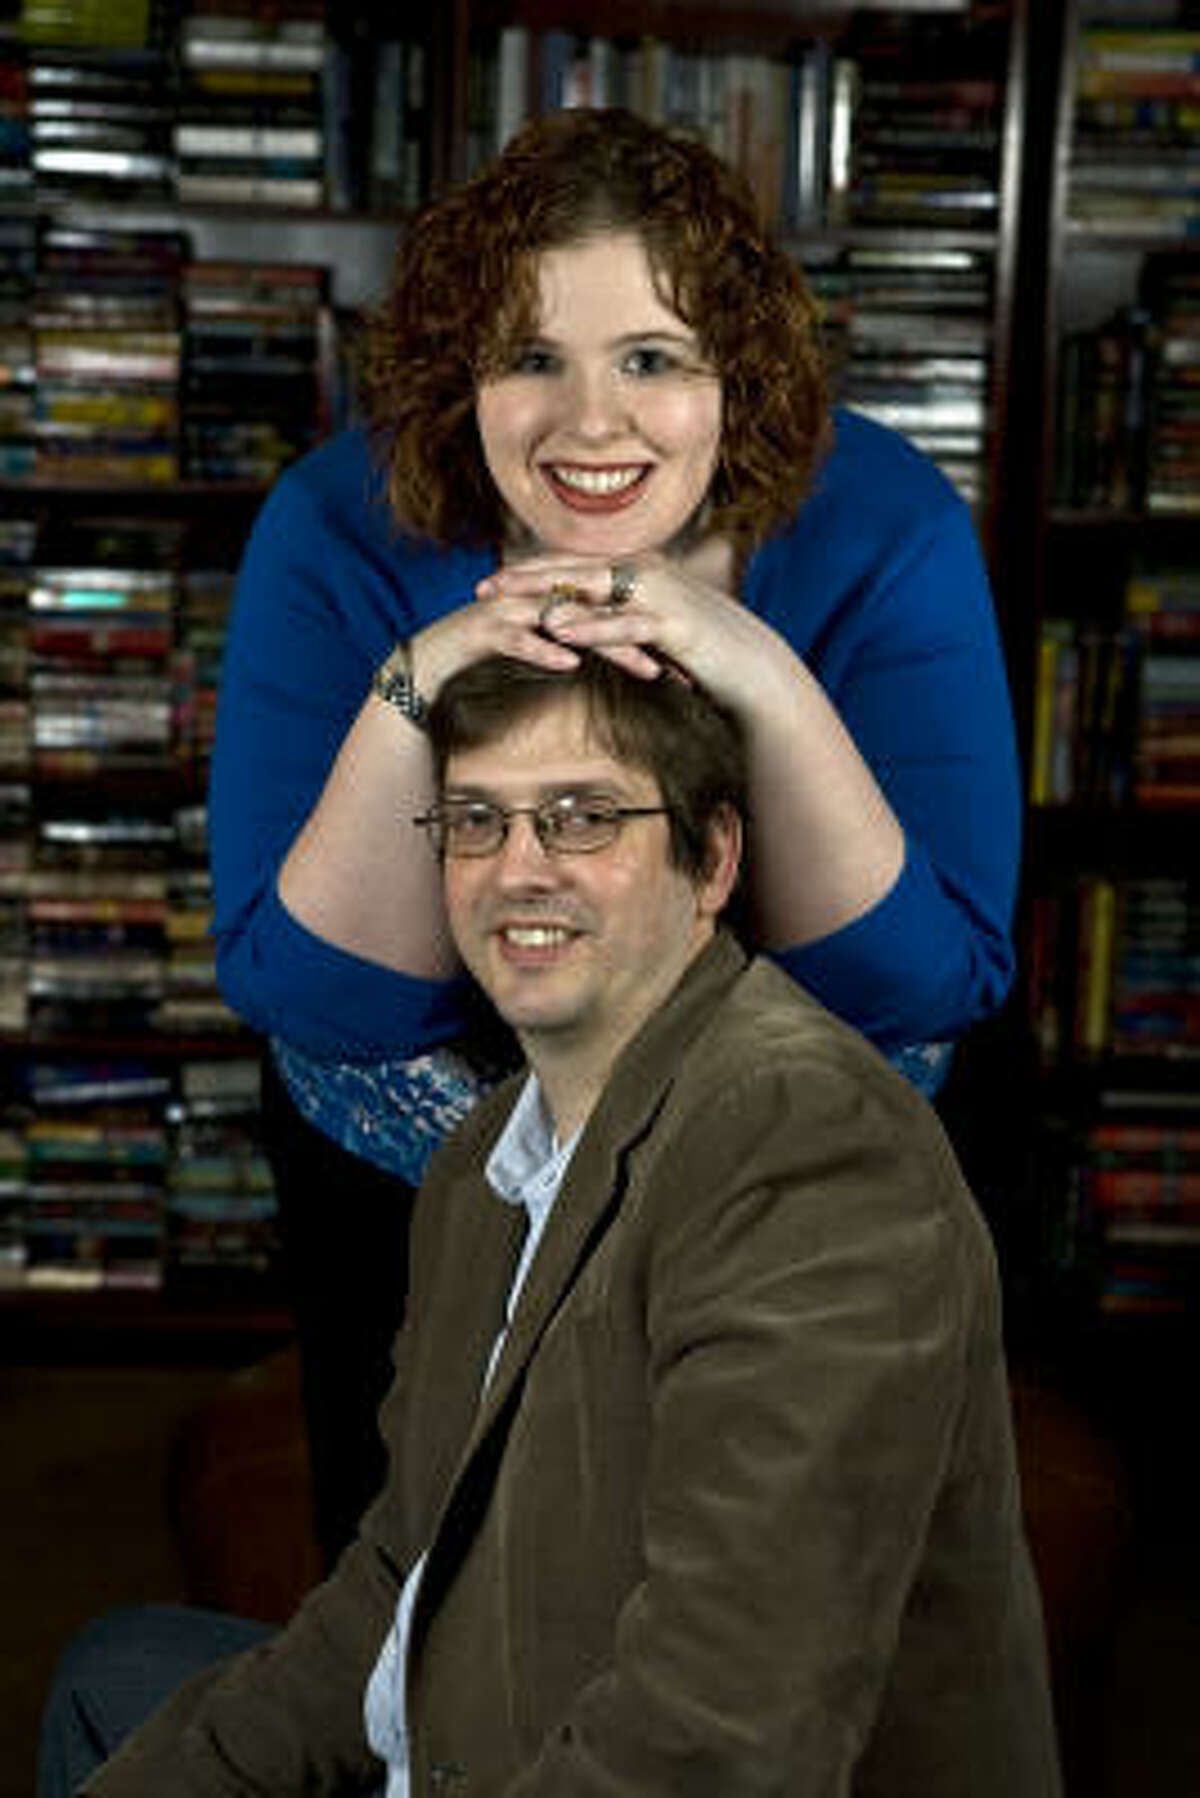 McKenna Jordan and David Thompson fell in love while working at Murder By the Book, the mystery bookstore they now run.